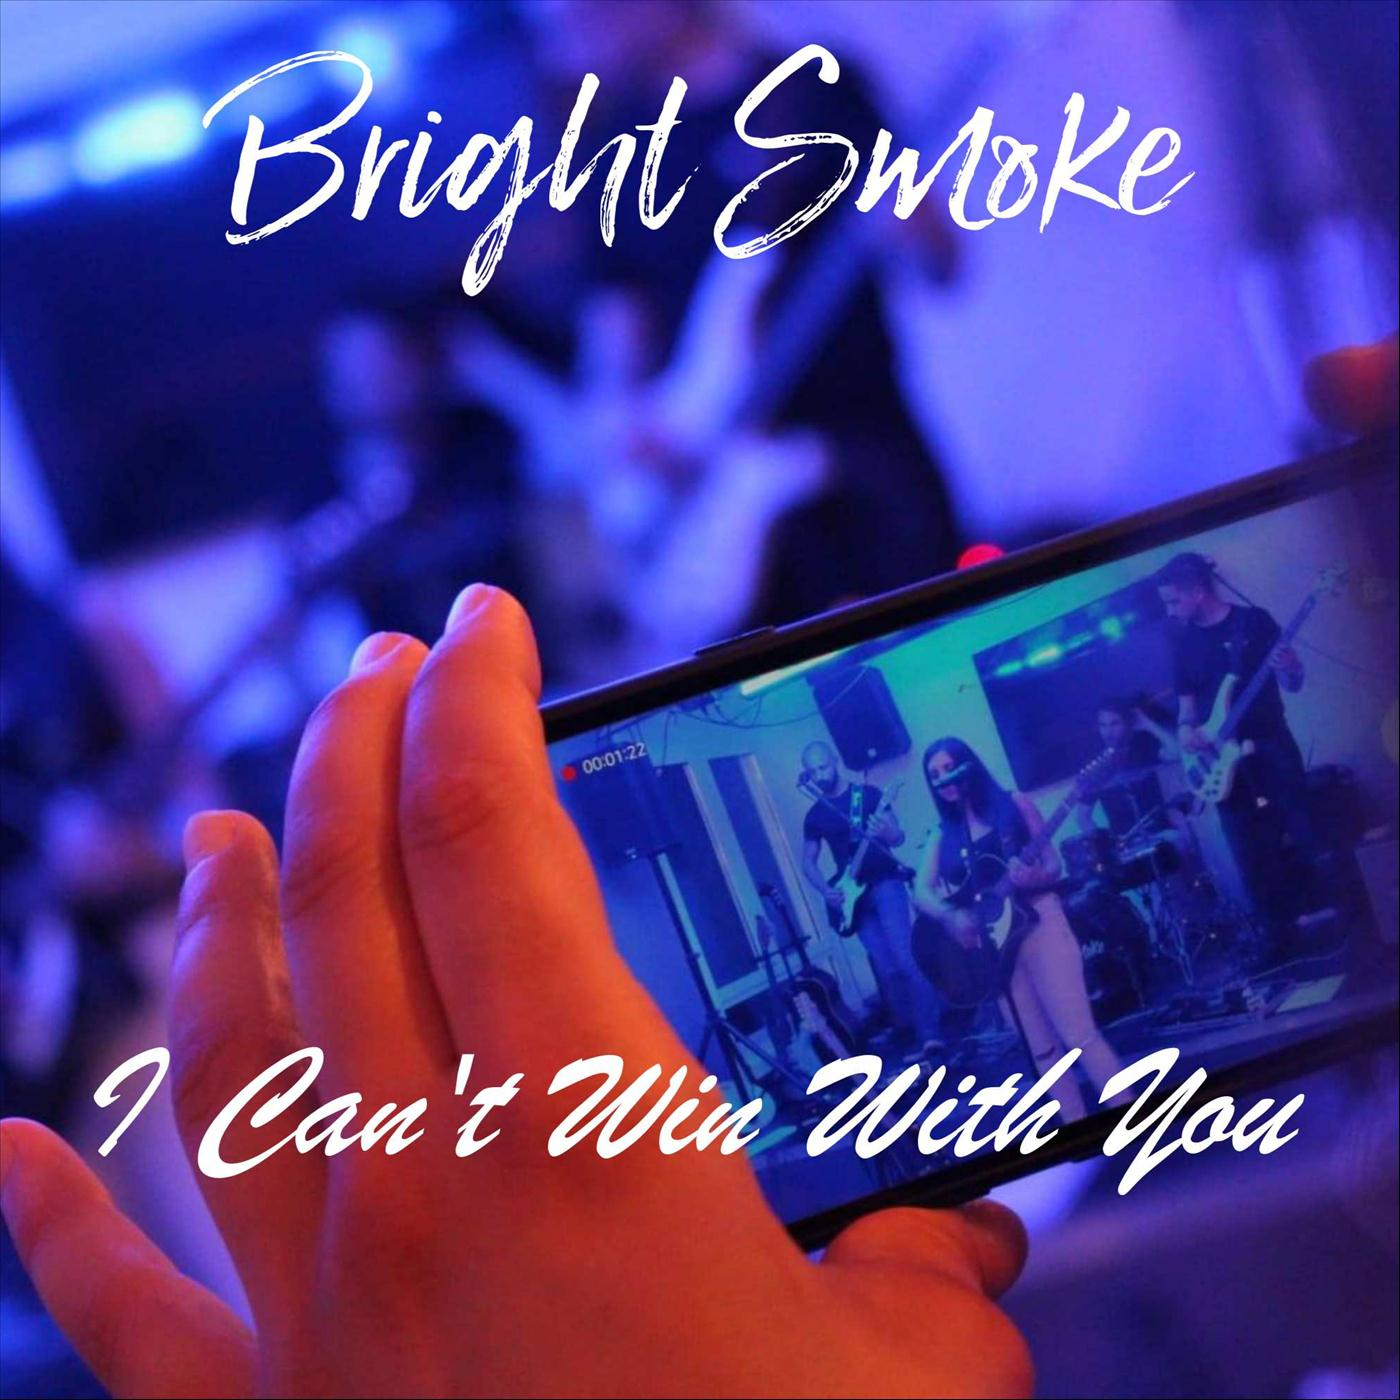 I Can't Win With You - Bright Smokes